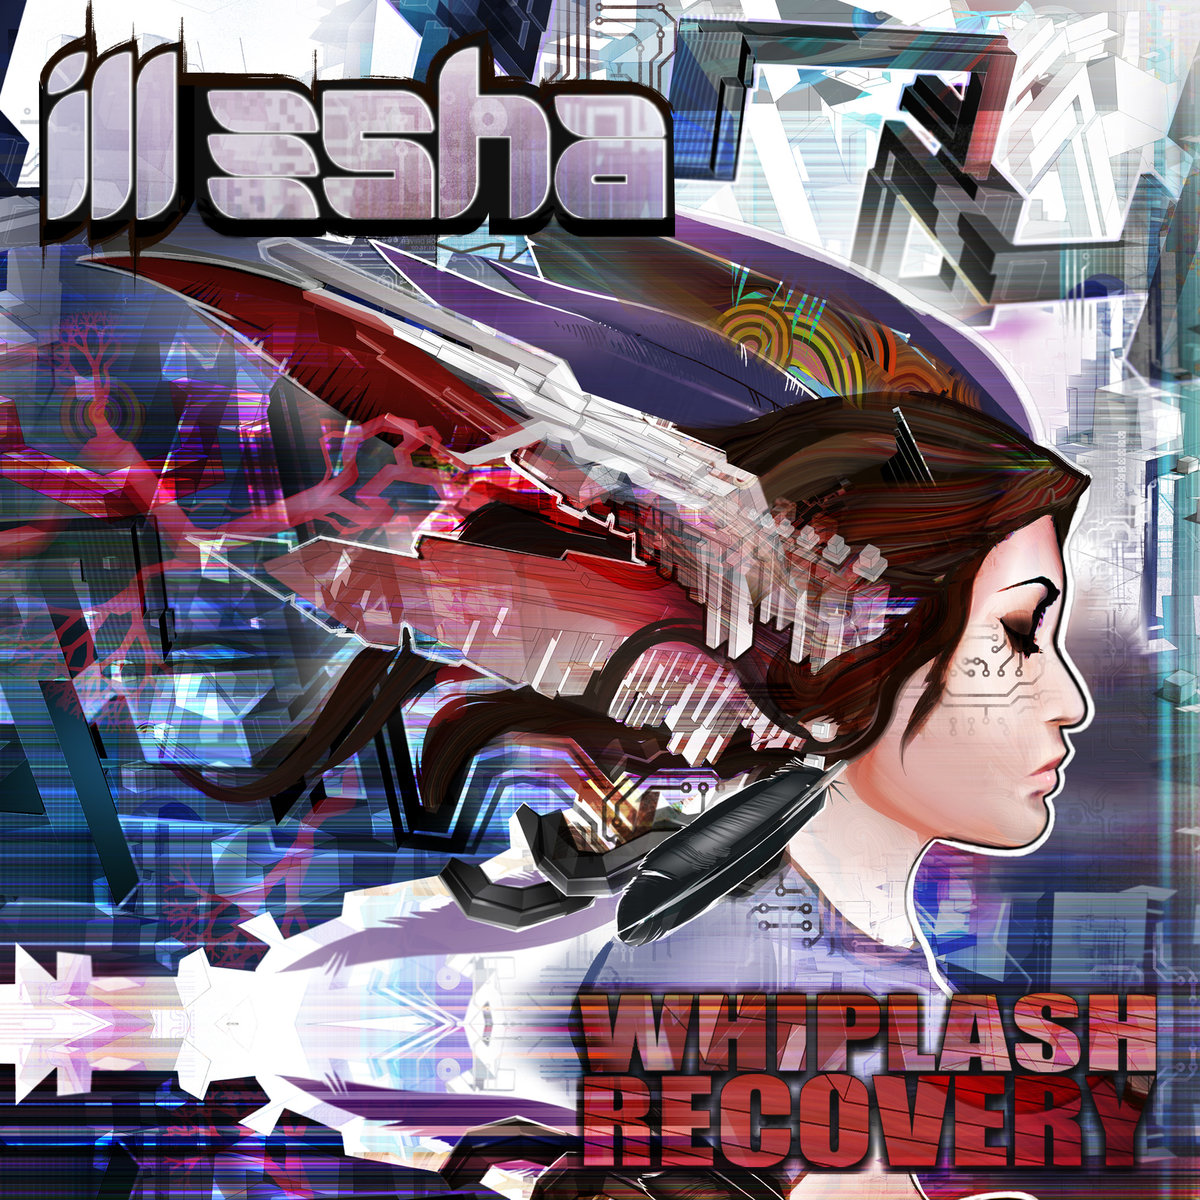 ill-esha - Heartpocalypse @ 'Whiplash Recovery' album (california, denver)